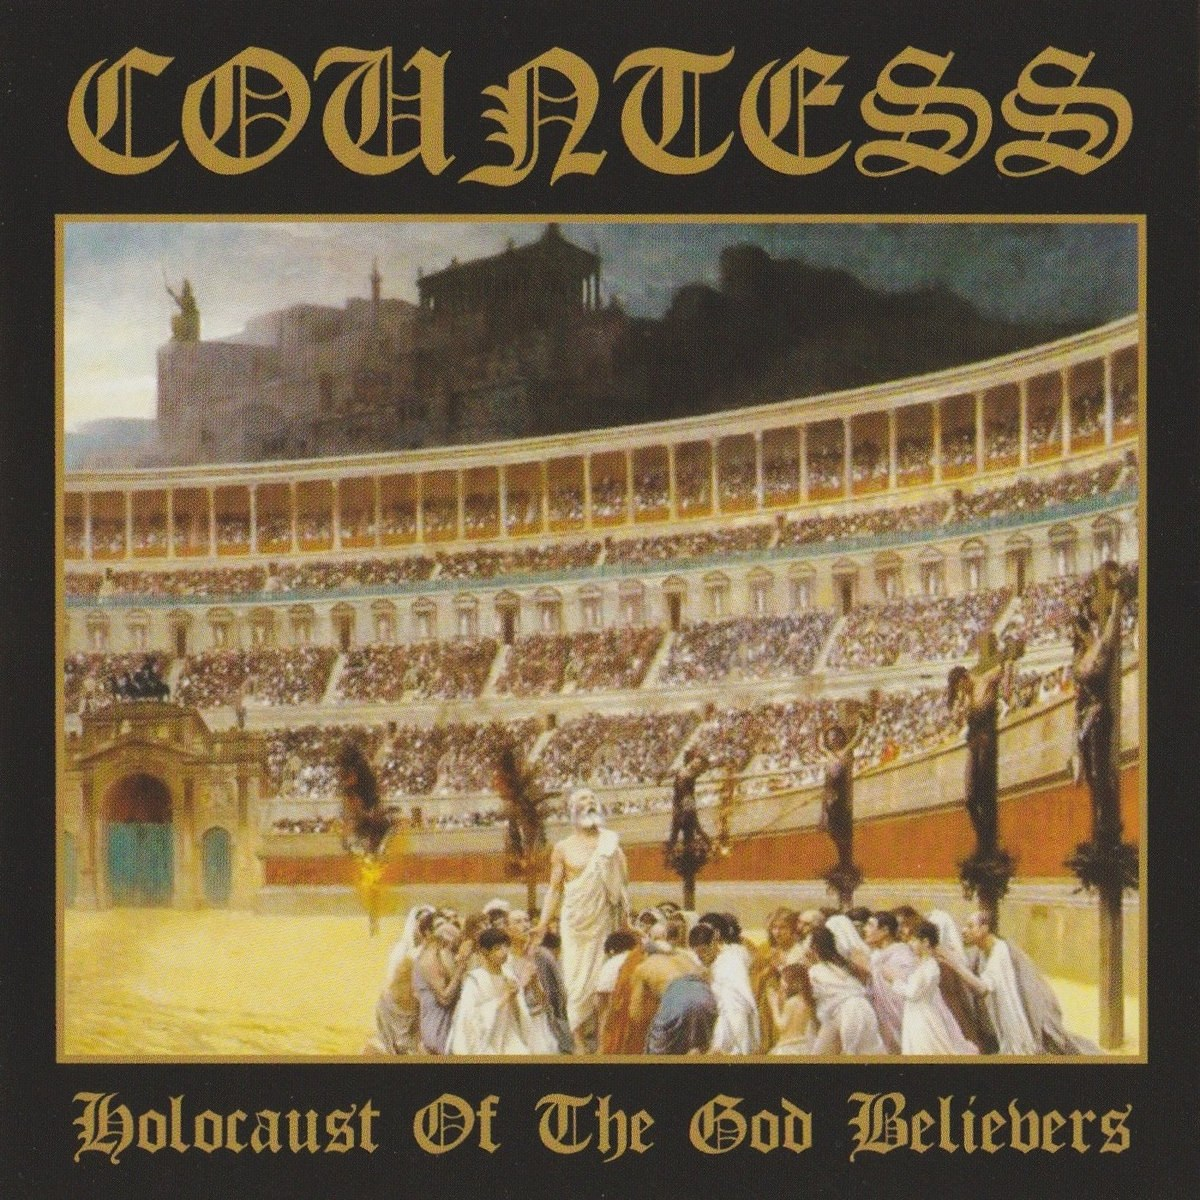 Review for Countess (NLD) - Holocaust of the God Believers